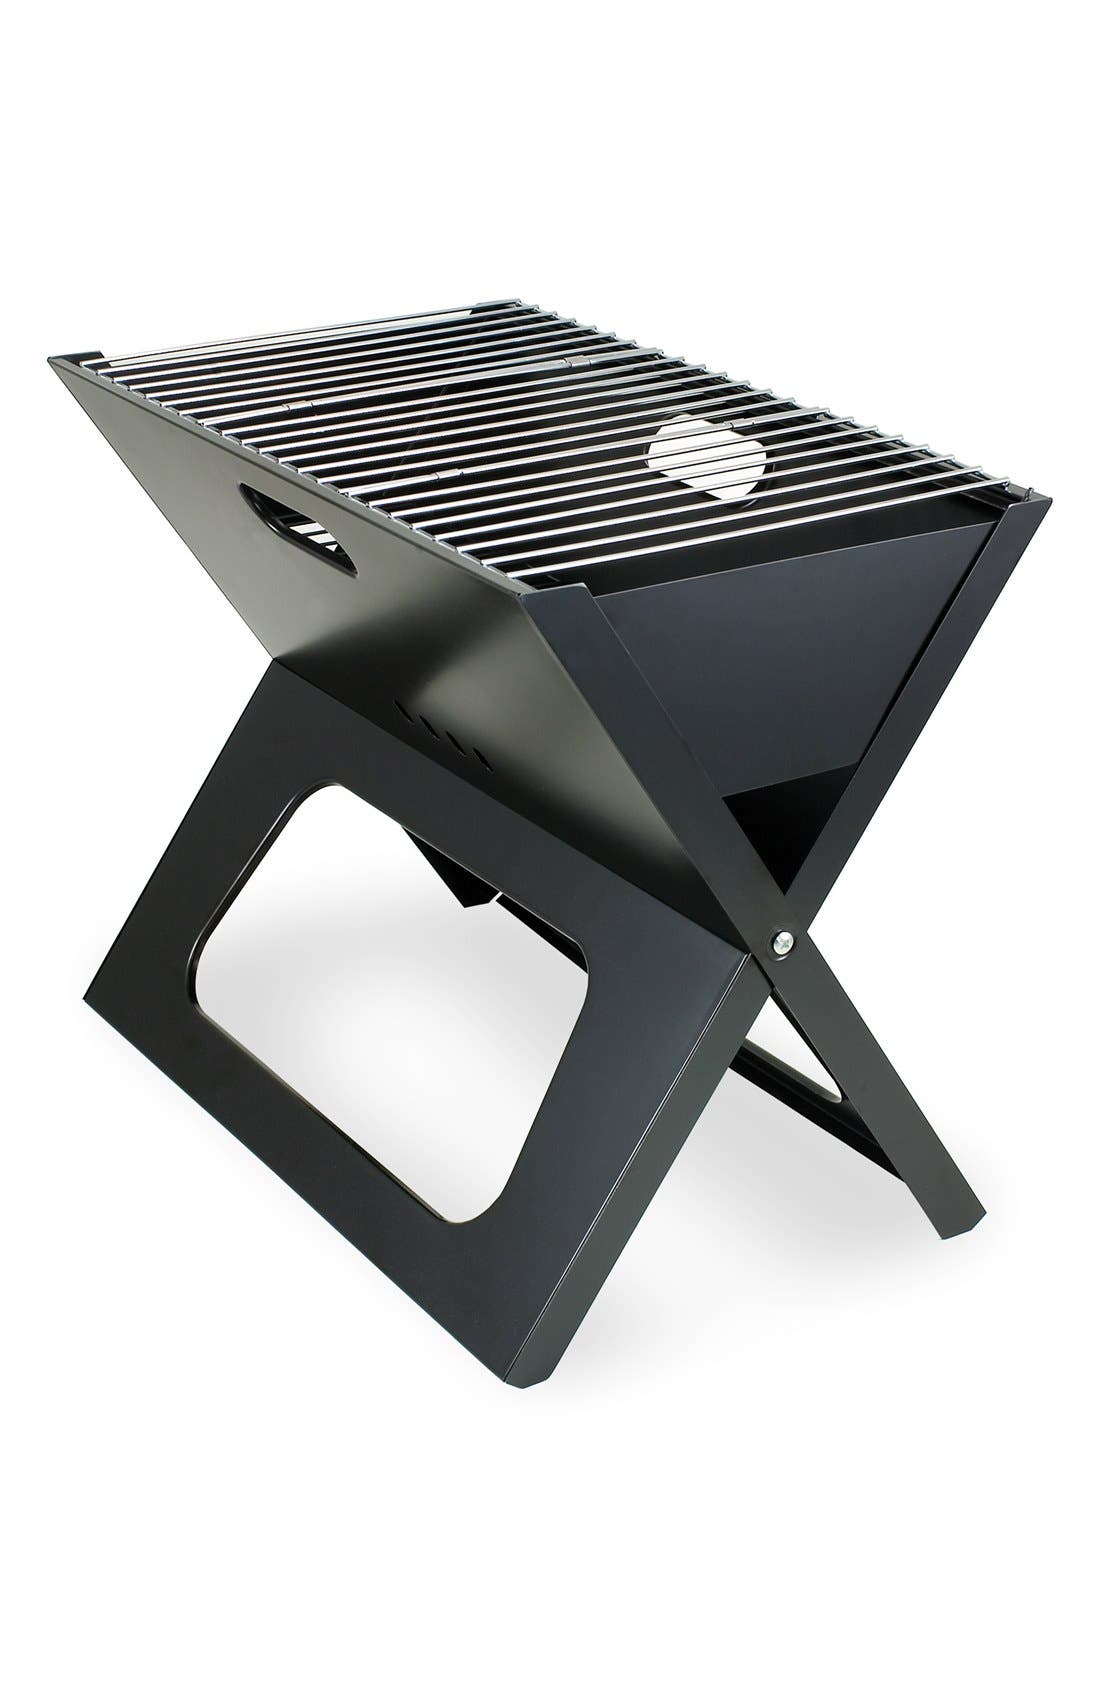 'X-Grill' Portable Fold-Up BBQ Grill,                         Main,                         color, Black